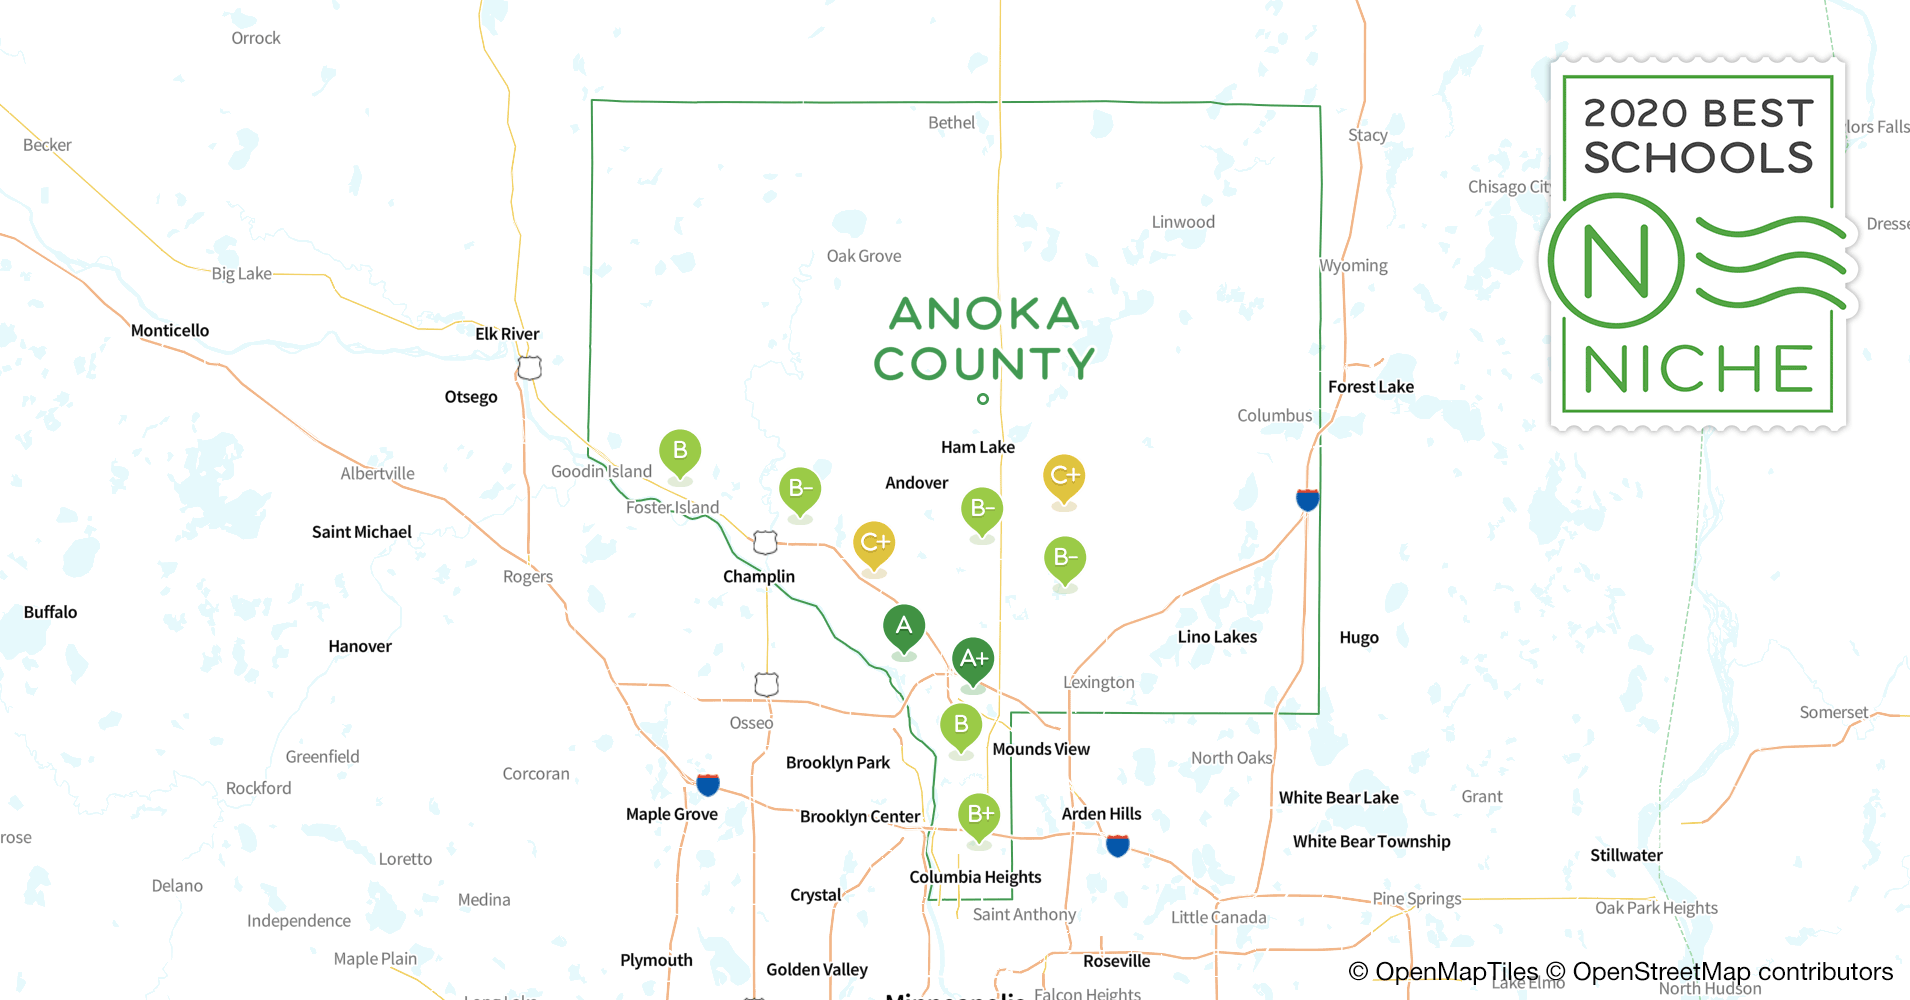 2020 Best Public Elementary s in Anoka County, MN - Niche Map Of Anoka County on map of minnesota, map of metropolitan state university, map of st. cloud, map of mankato, map of hamline university, map of medtronic, map of metro blue line, map of blaine, map of cedar, map of burnsville, map of spring lake park, map hennepin county, map of north hennepin community college, map of maple grove, map minnesota county, map of mound, map of national sports center, map of downtown anoka mn, map of coon creek, map of lindstrom,